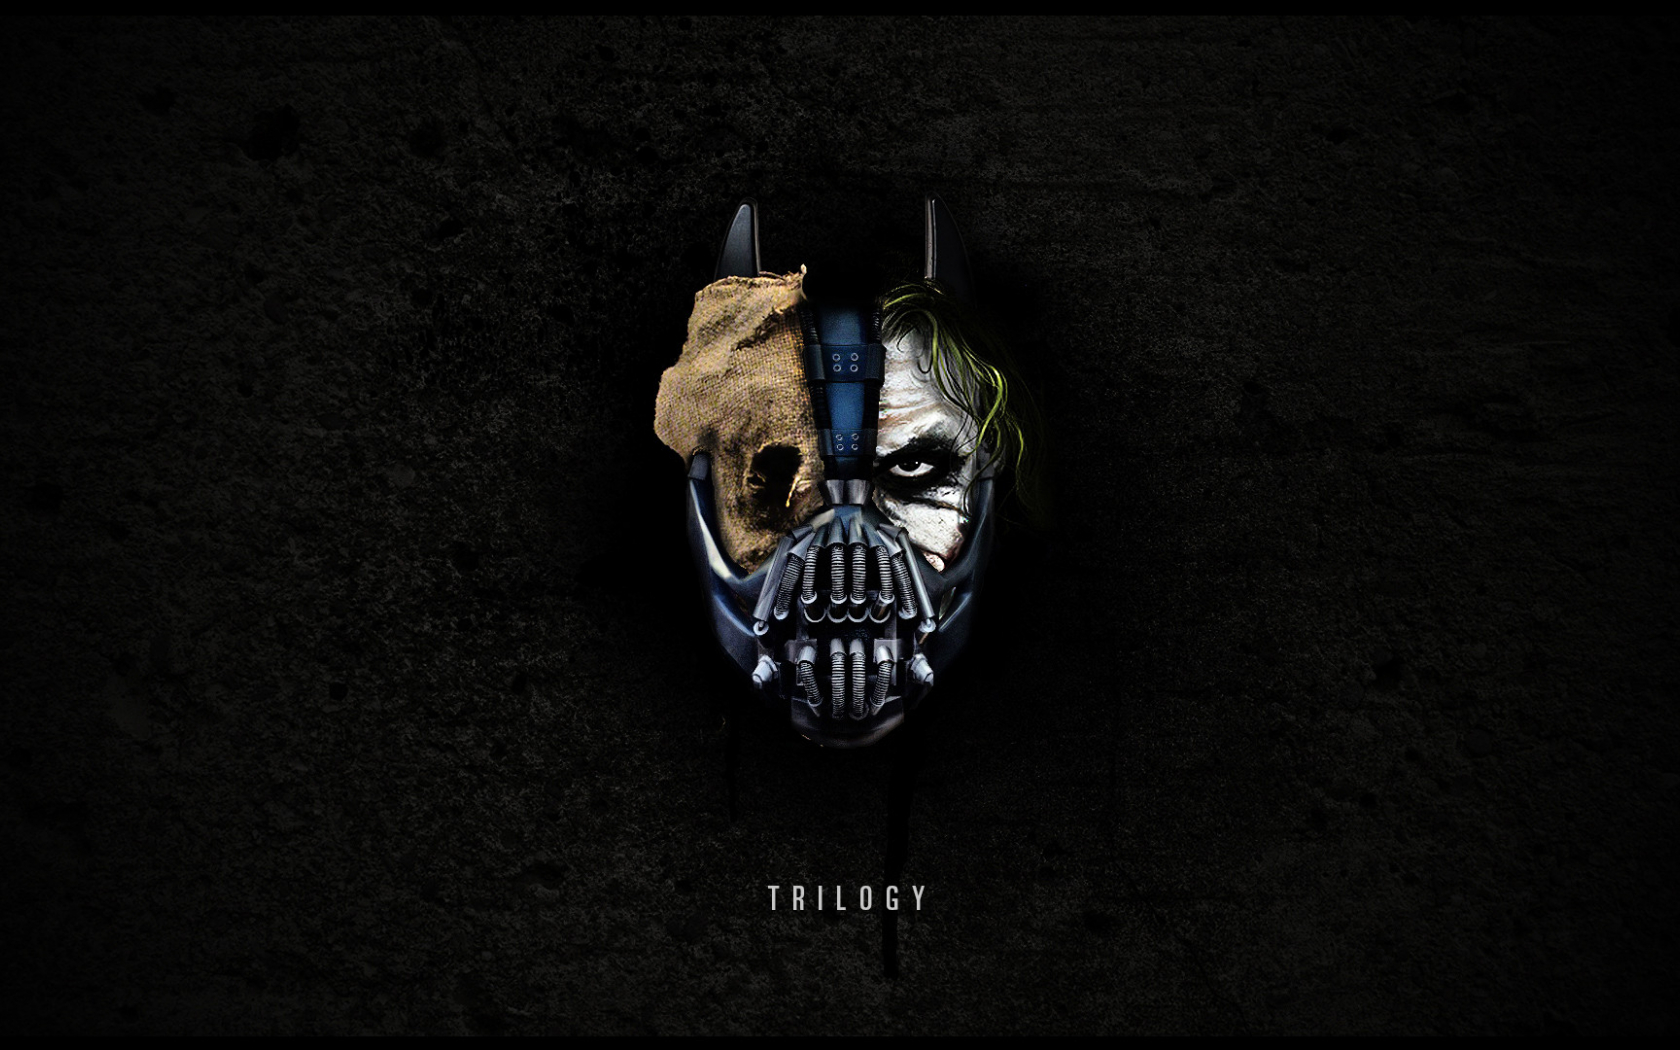 Free Download The Dark Knight Trilogy Wallpapers Hd Wallpapers